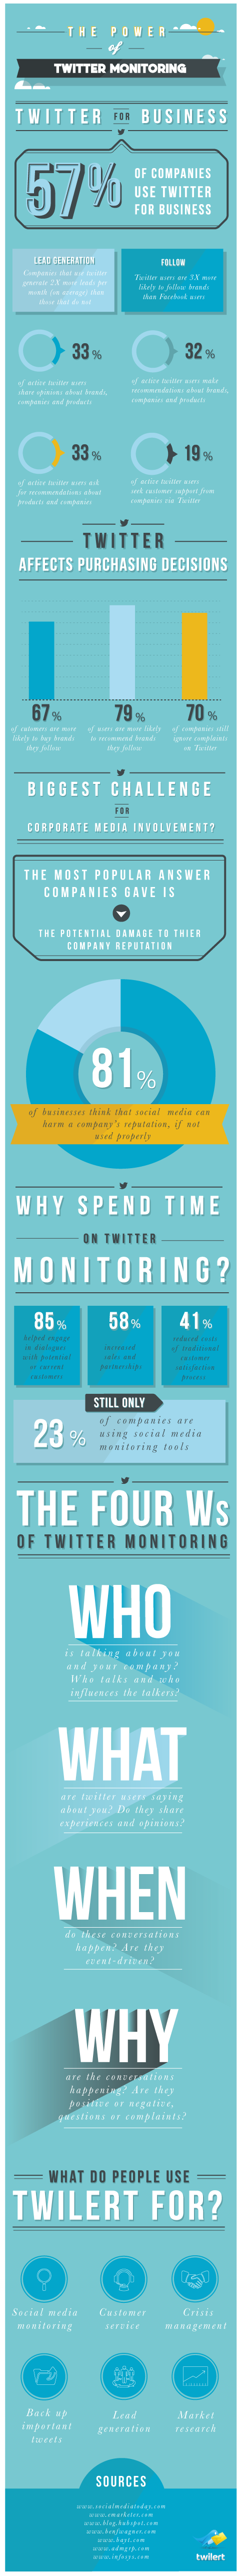 [Infographic] The Power of Twitter Monitoring